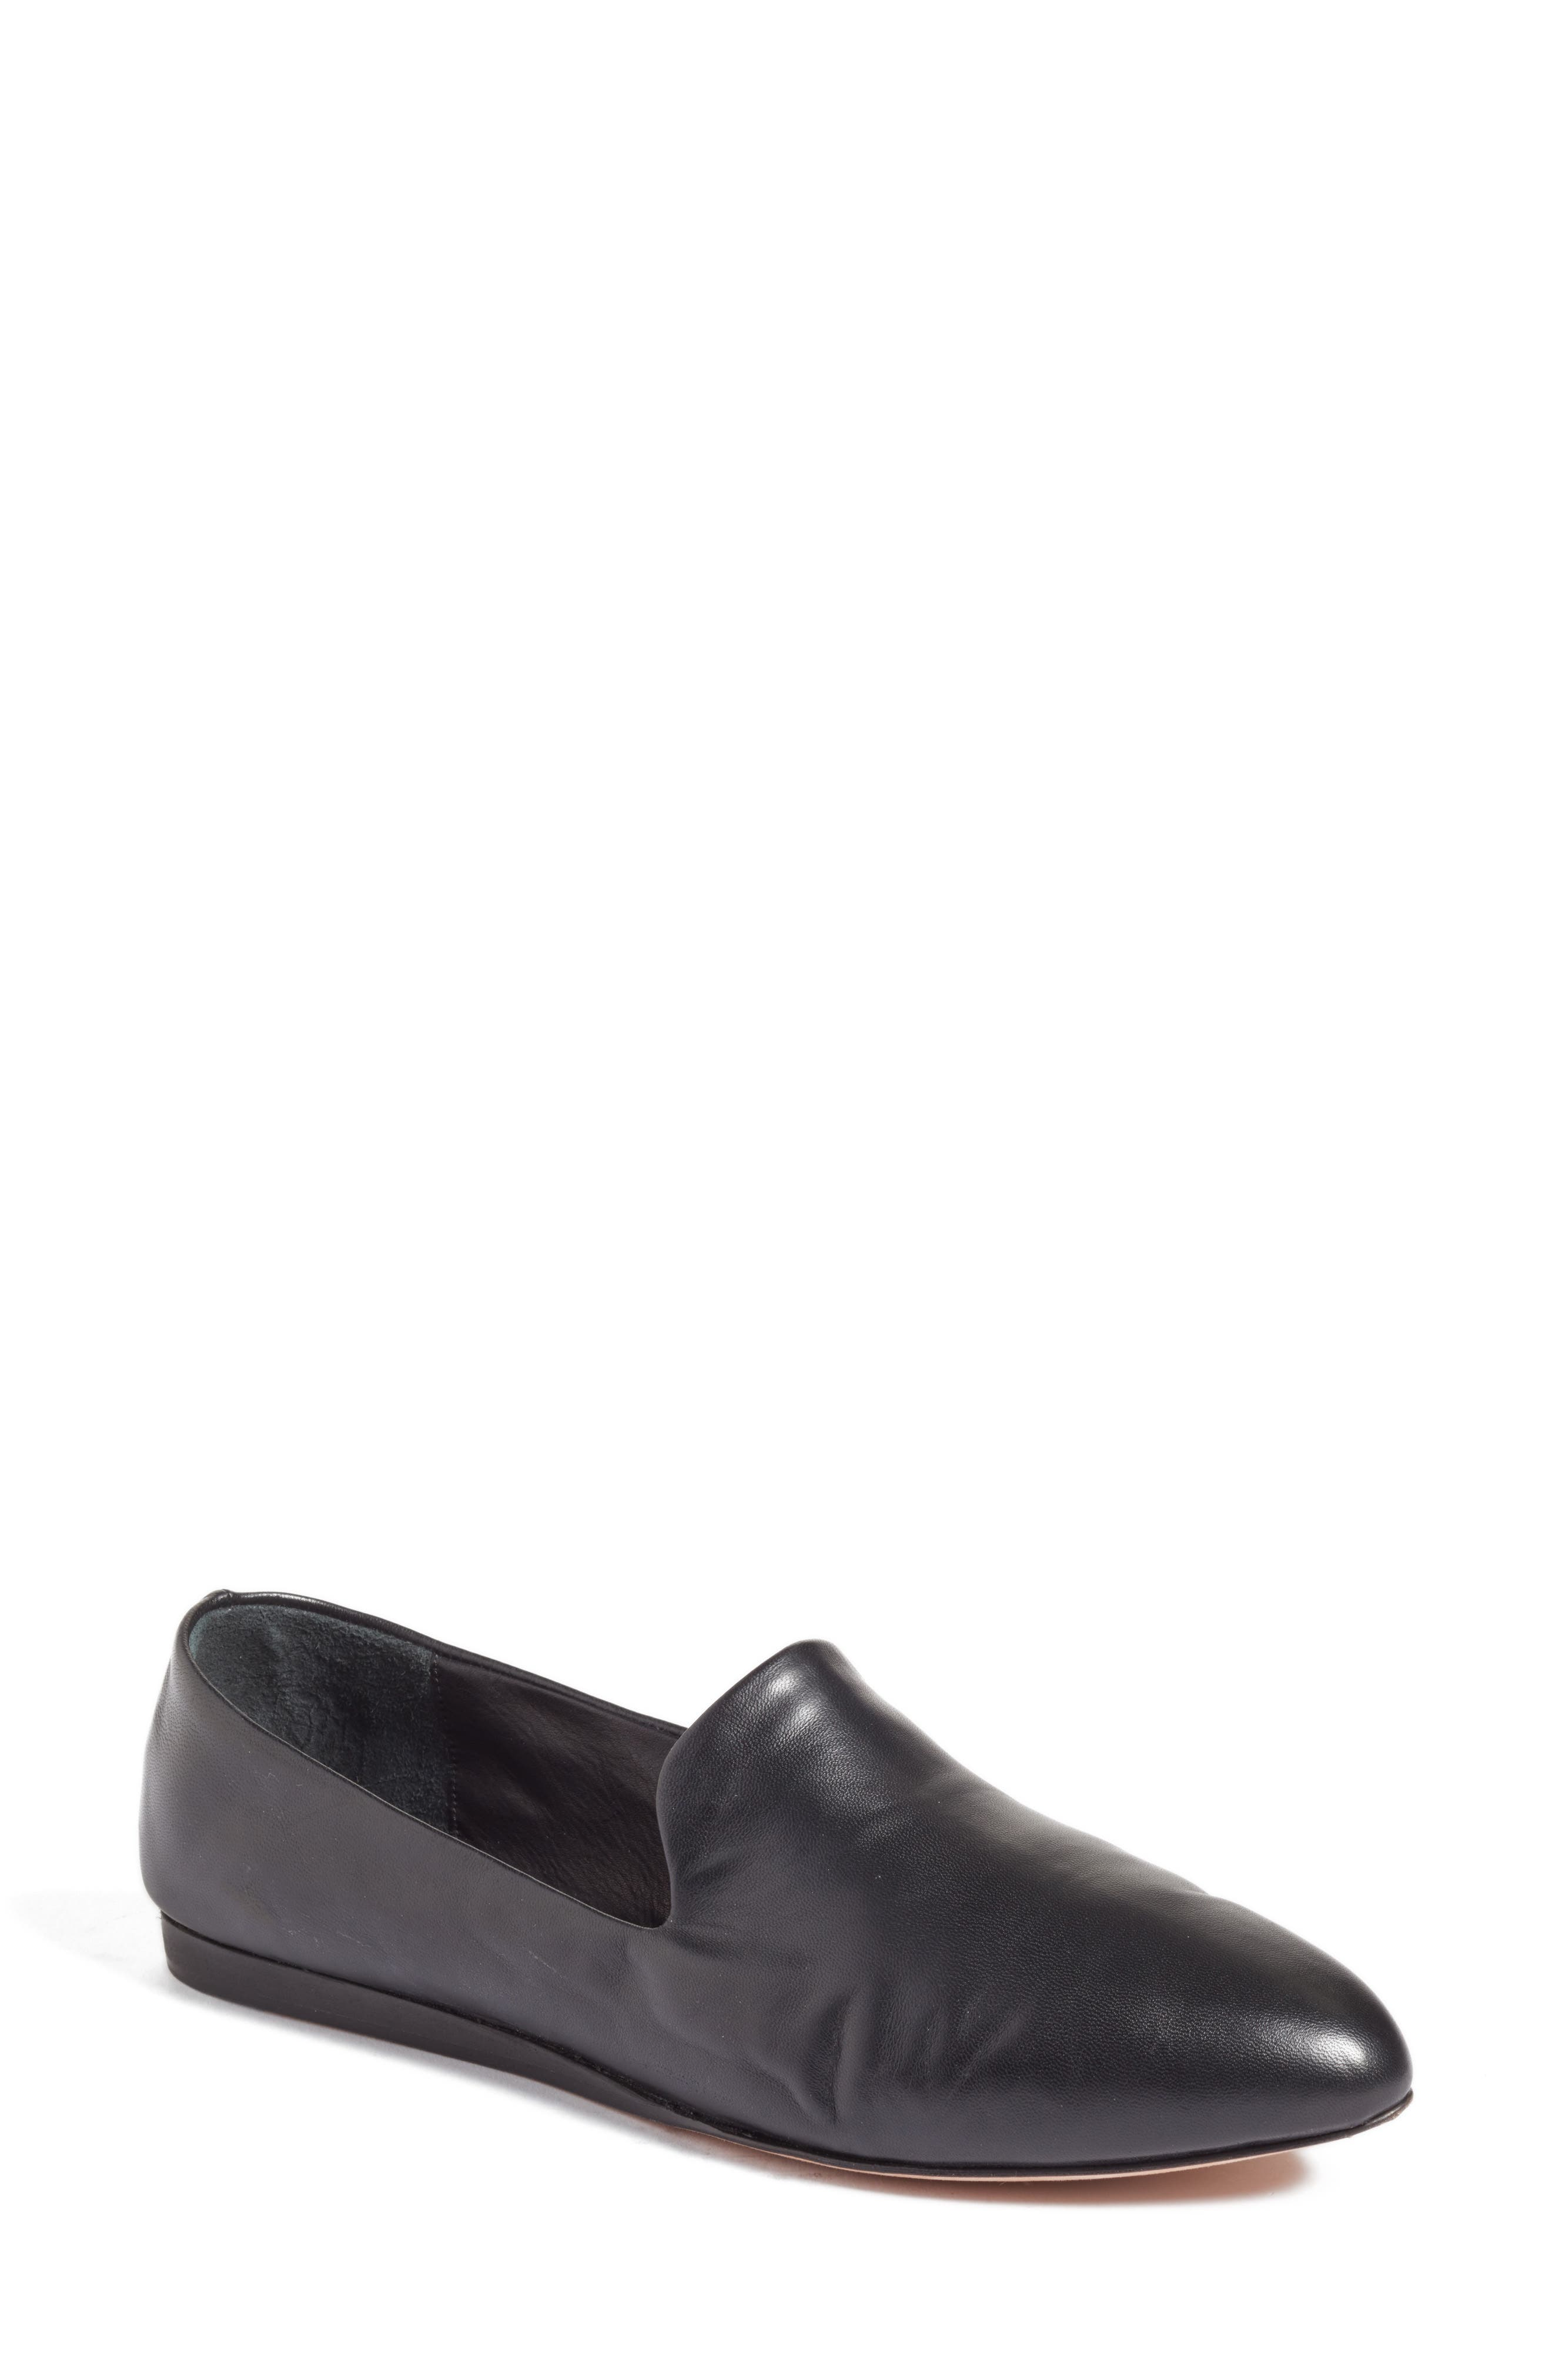 Griffin Pointy Toe Loafer,                         Main,                         color, BLACK